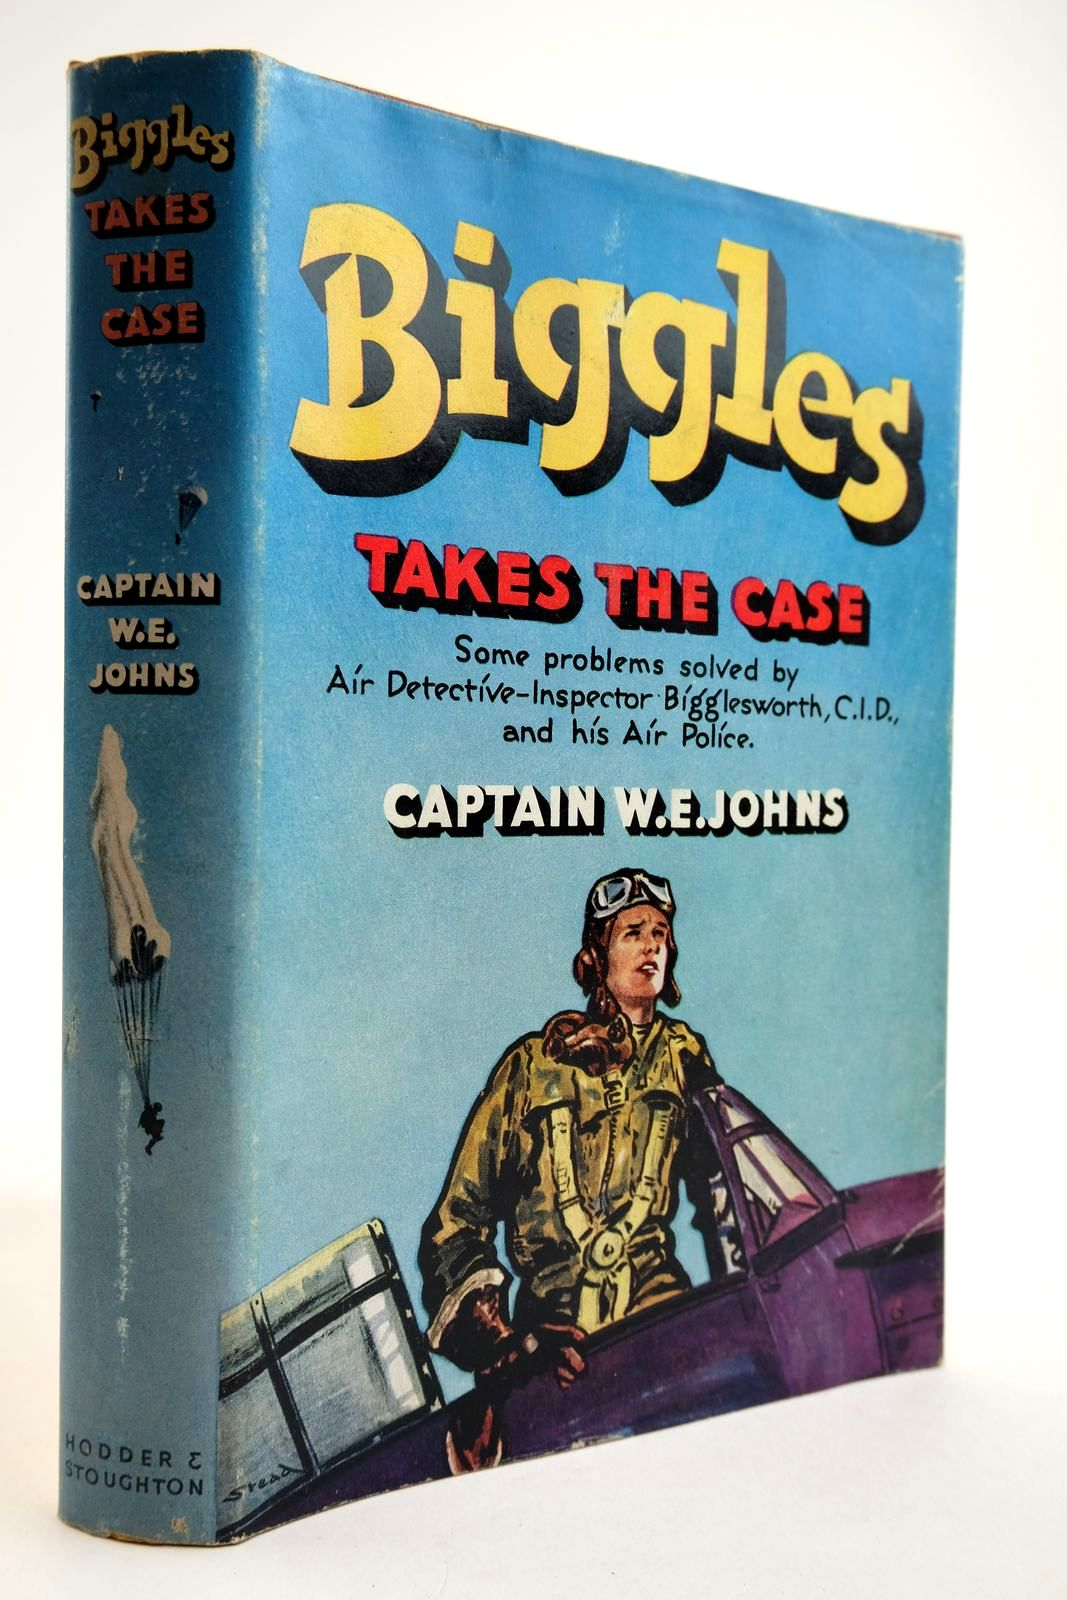 Photo of BIGGLES TAKES THE CASE written by Johns, W.E. illustrated by Stead, Leslie published by Hodder & Stoughton (STOCK CODE: 2134124)  for sale by Stella & Rose's Books